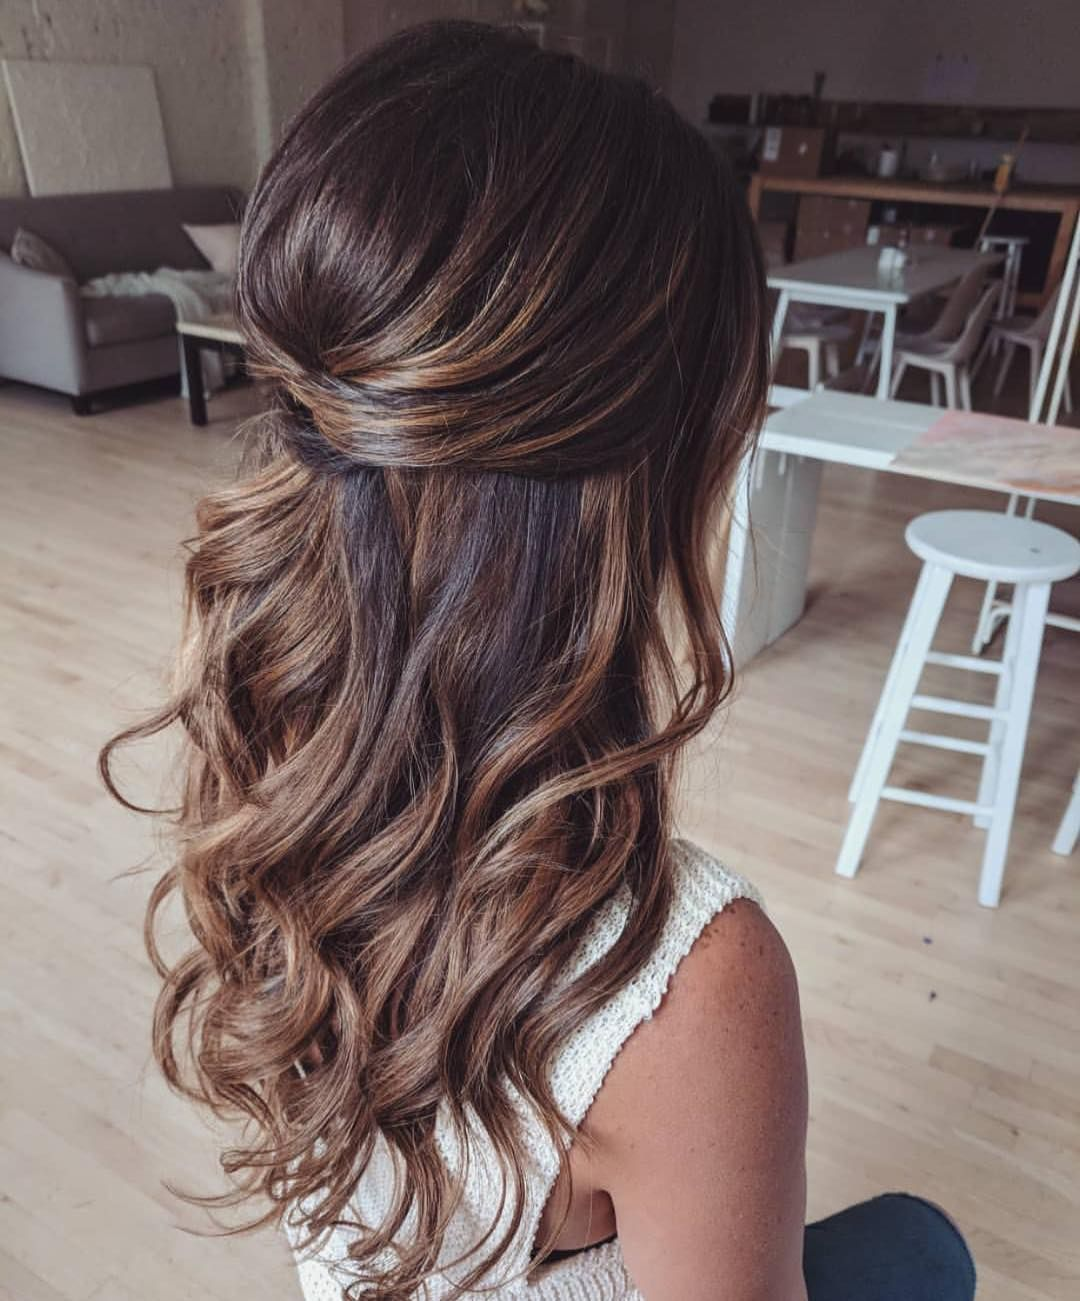 39 Gorgeous Half Up Half Down Hairstyles Long Hair Styles Down Hairstyles Hair Styles